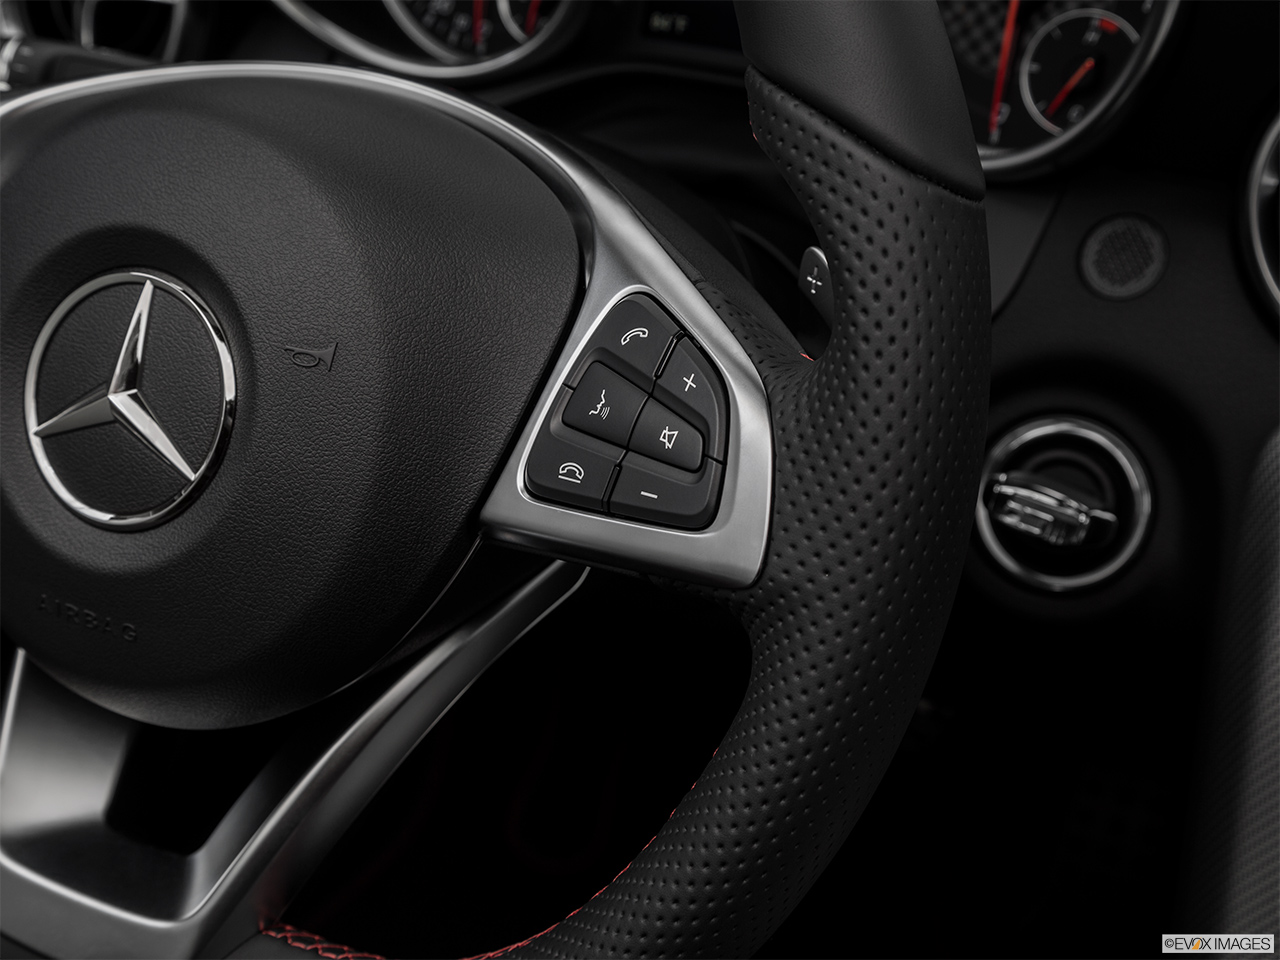 2019 Mercedes-Benz SLC-class SLC43 AMG Steering Wheel Controls (Right Side)